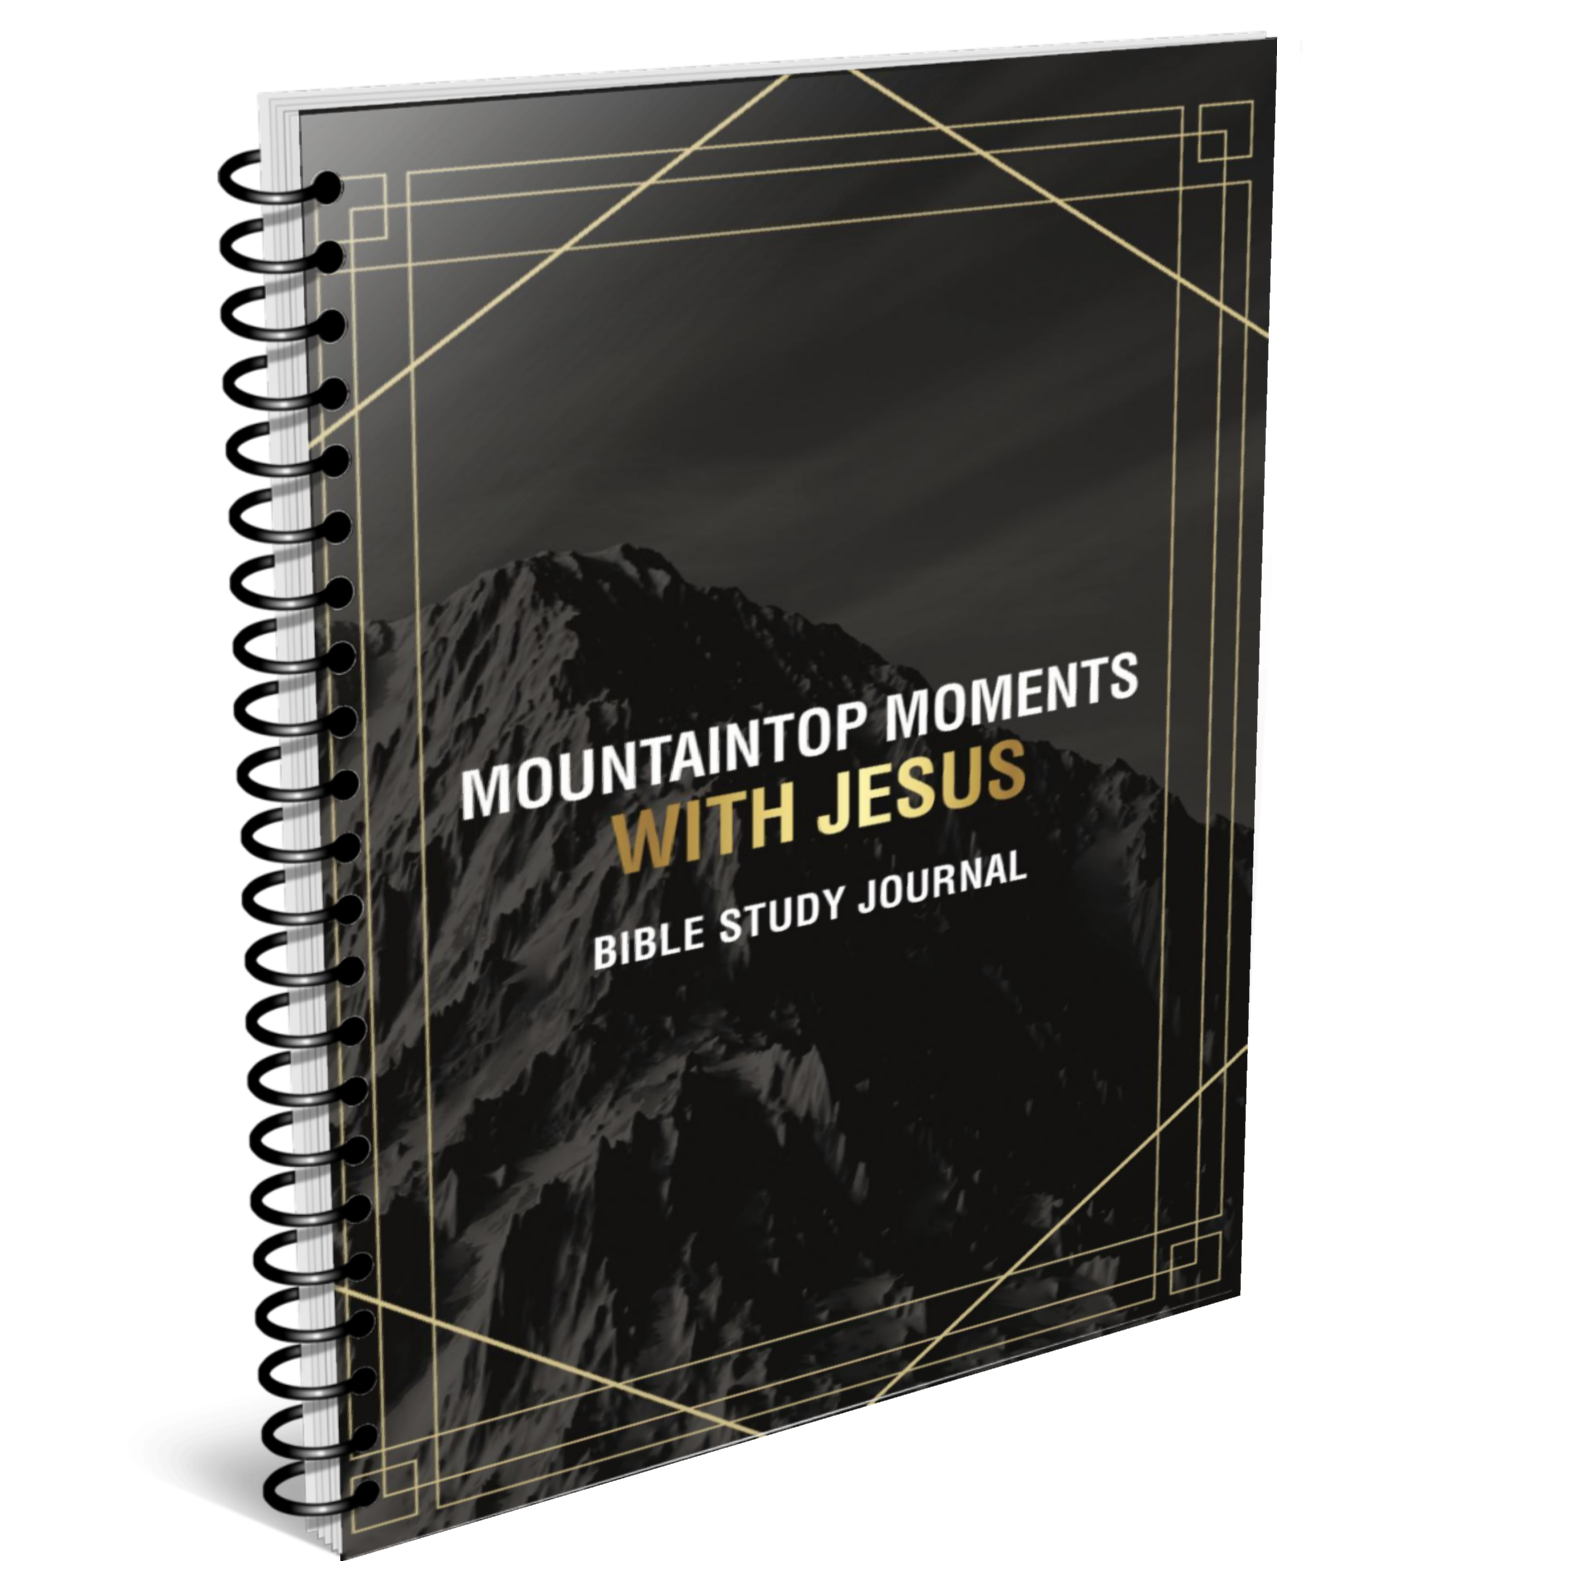 Mountaintop Moments with Jesus Bible Study Journal